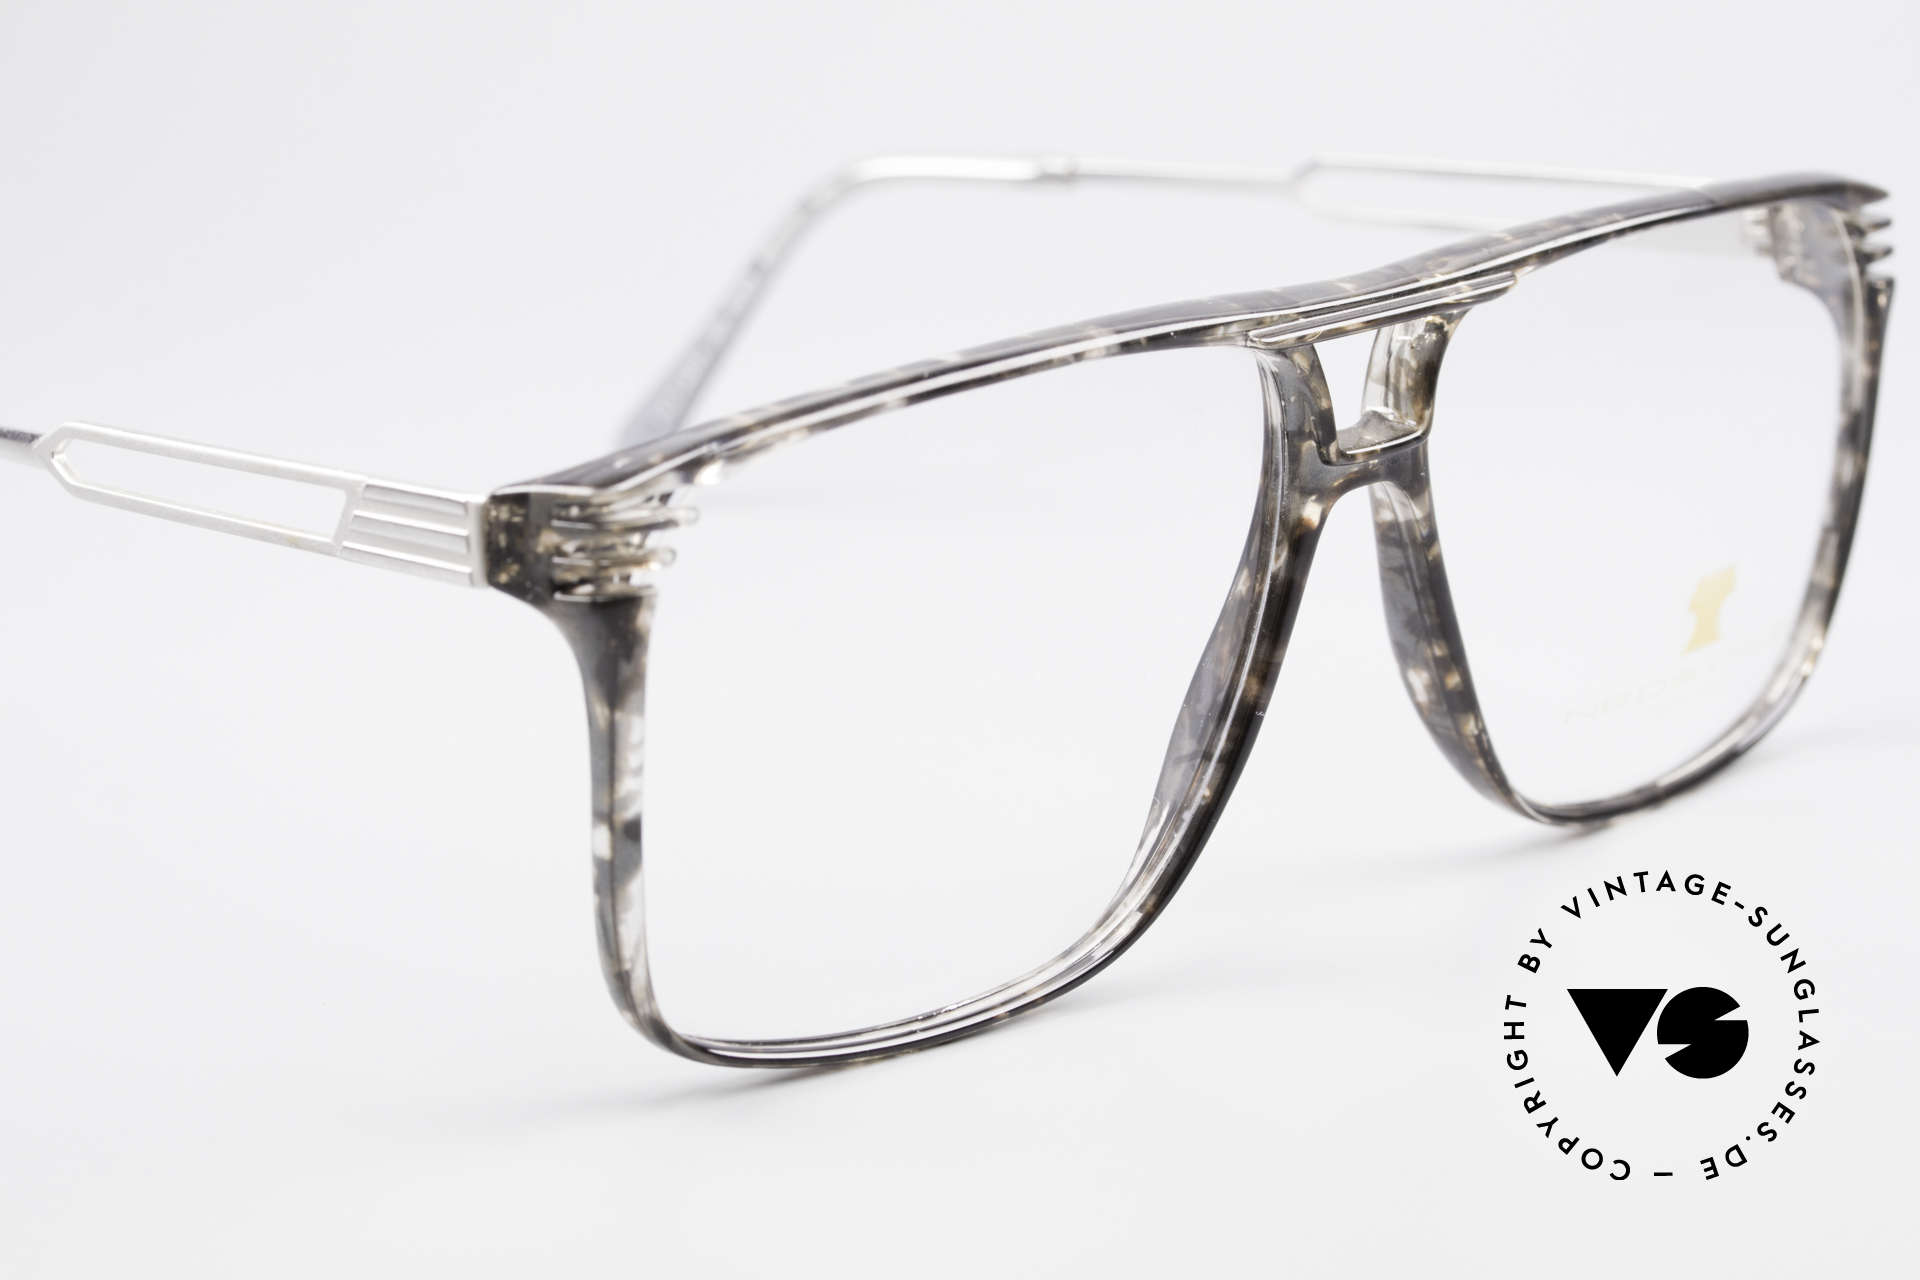 Neostyle Rotary Prestige 33 Titan Frame 80's Eyeglasses, NO retro eyeglasses, but a real 30 years old unicum!, Made for Men